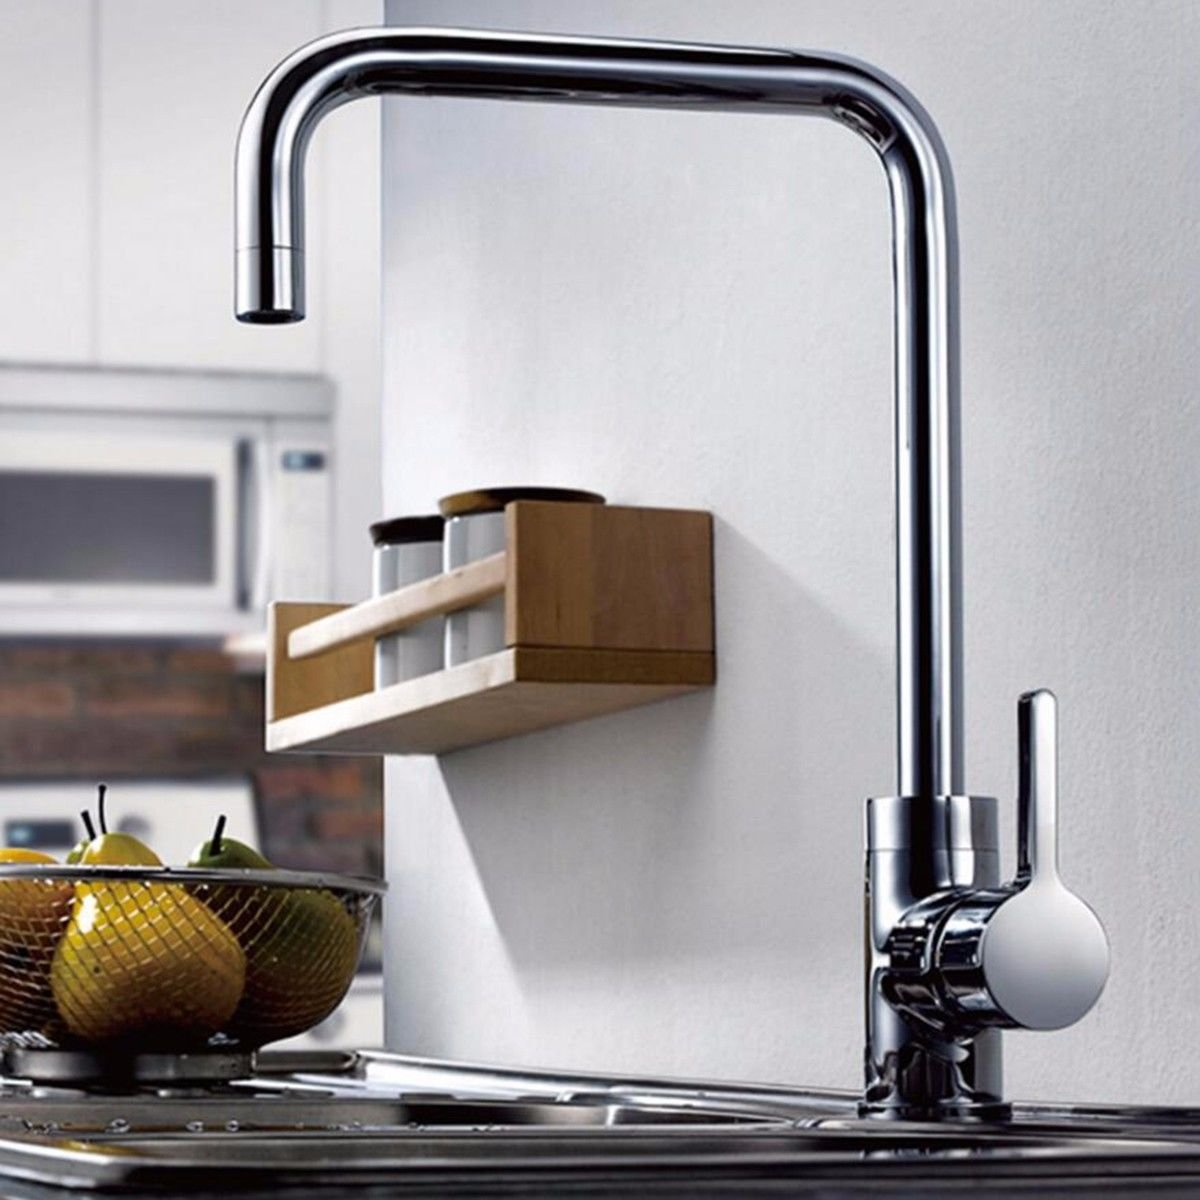 B2 MulFaucet Kitchen Faucet hot and Cold Copper Sink Sink Faucet redatable Laundry Pool Faucet A2